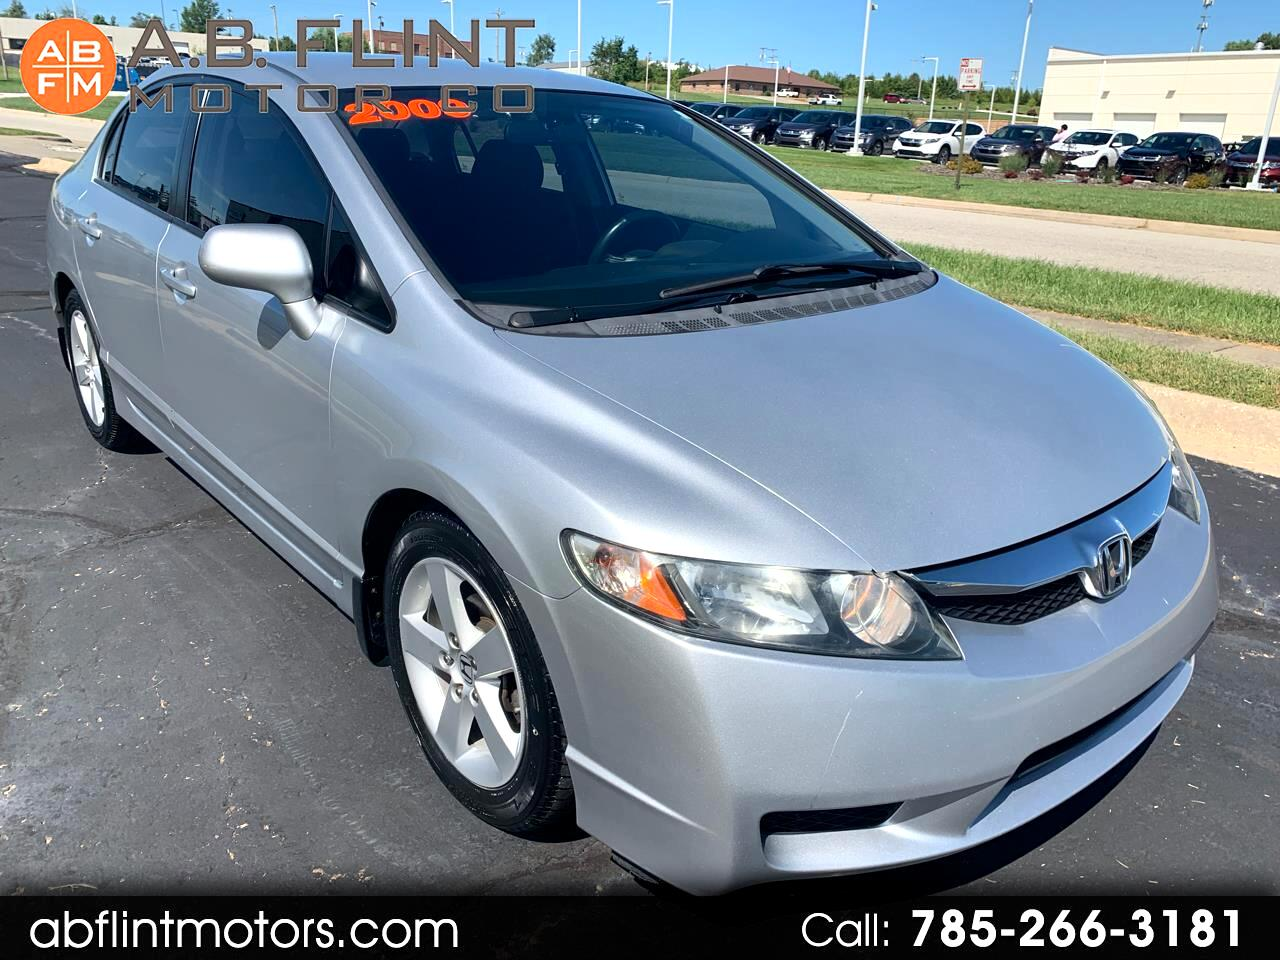 2009 Honda Civic Sedan LX CVT